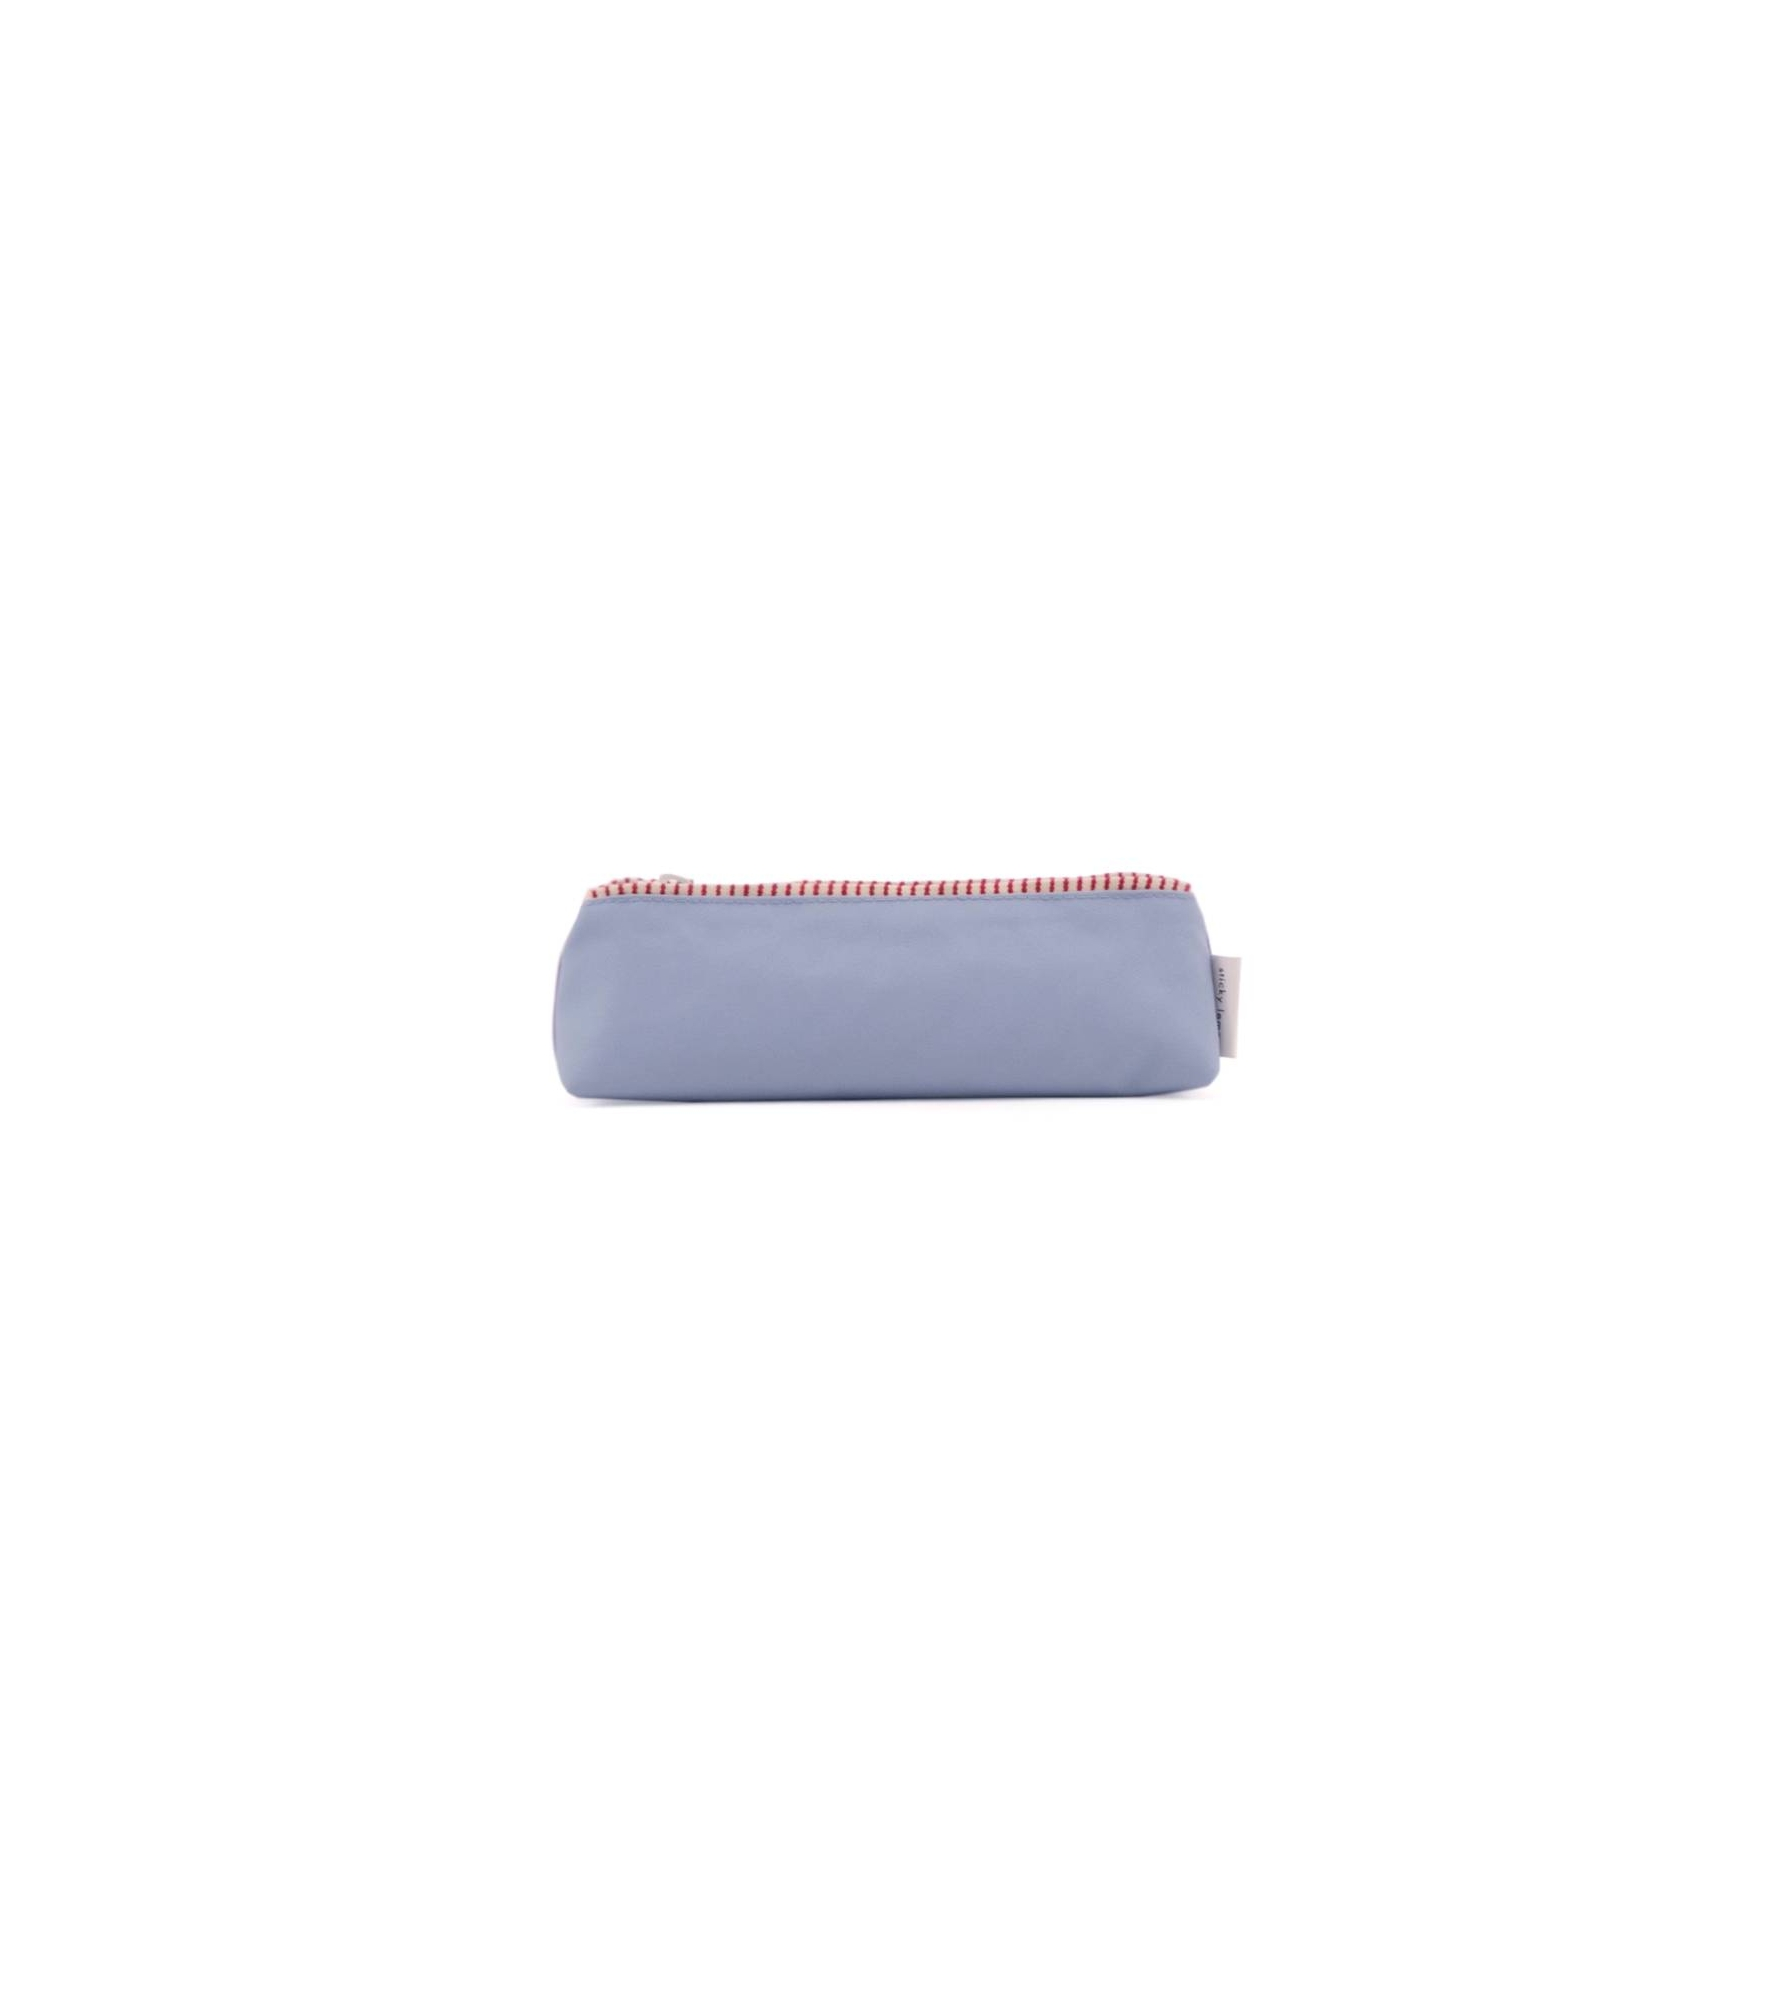 1801410 - Sticky Lemon - product - pencil case small - colour blocking - henckles blue + moustaf_edit.jpg